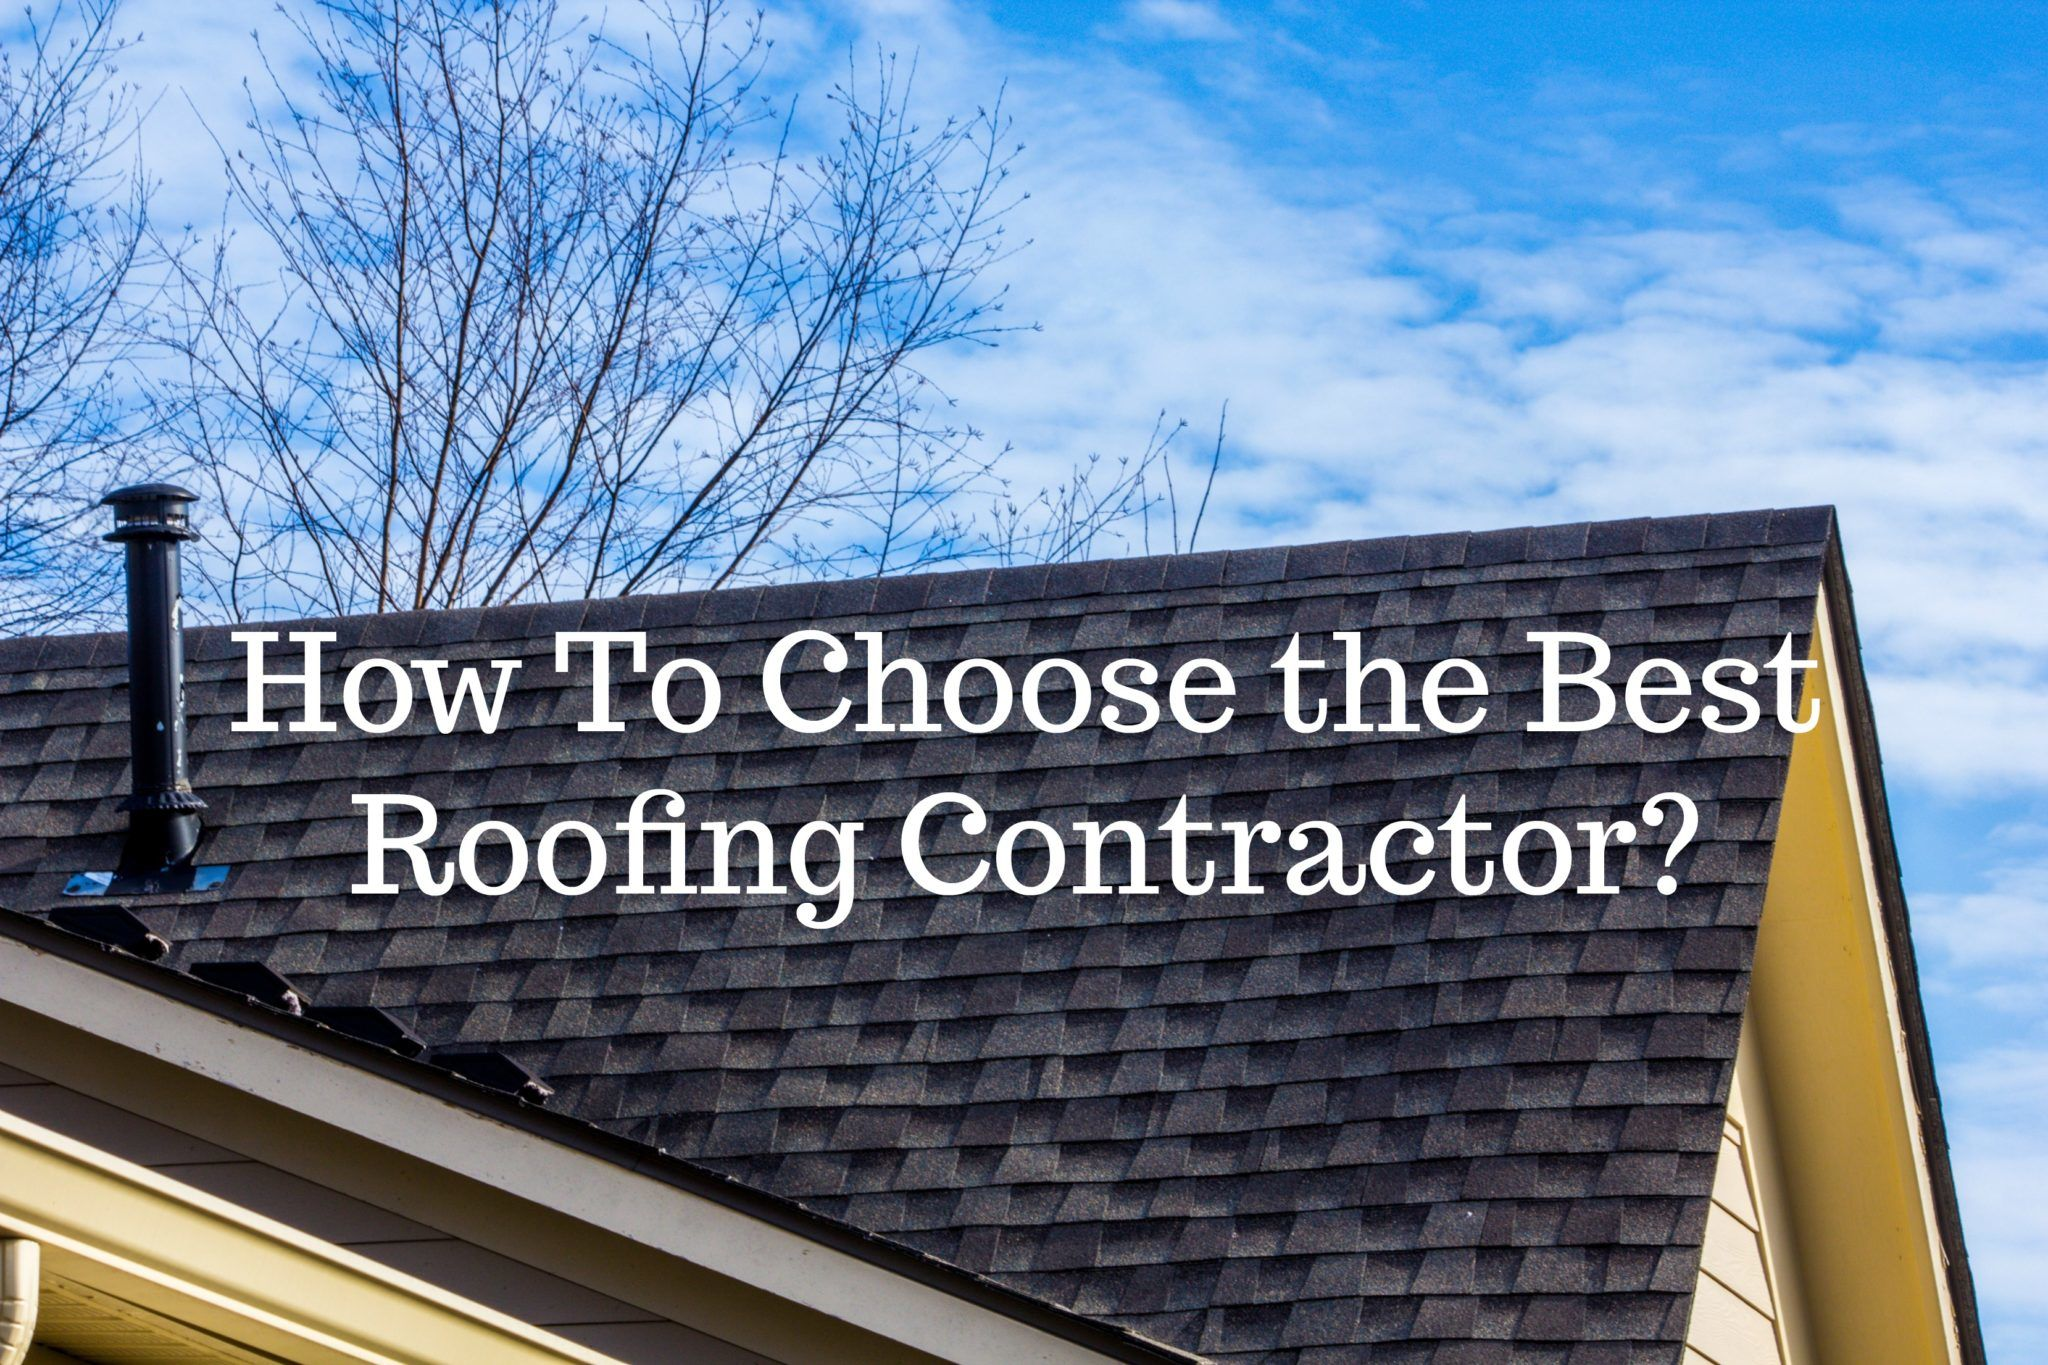 How to Choose the Best Roofing Contractor?